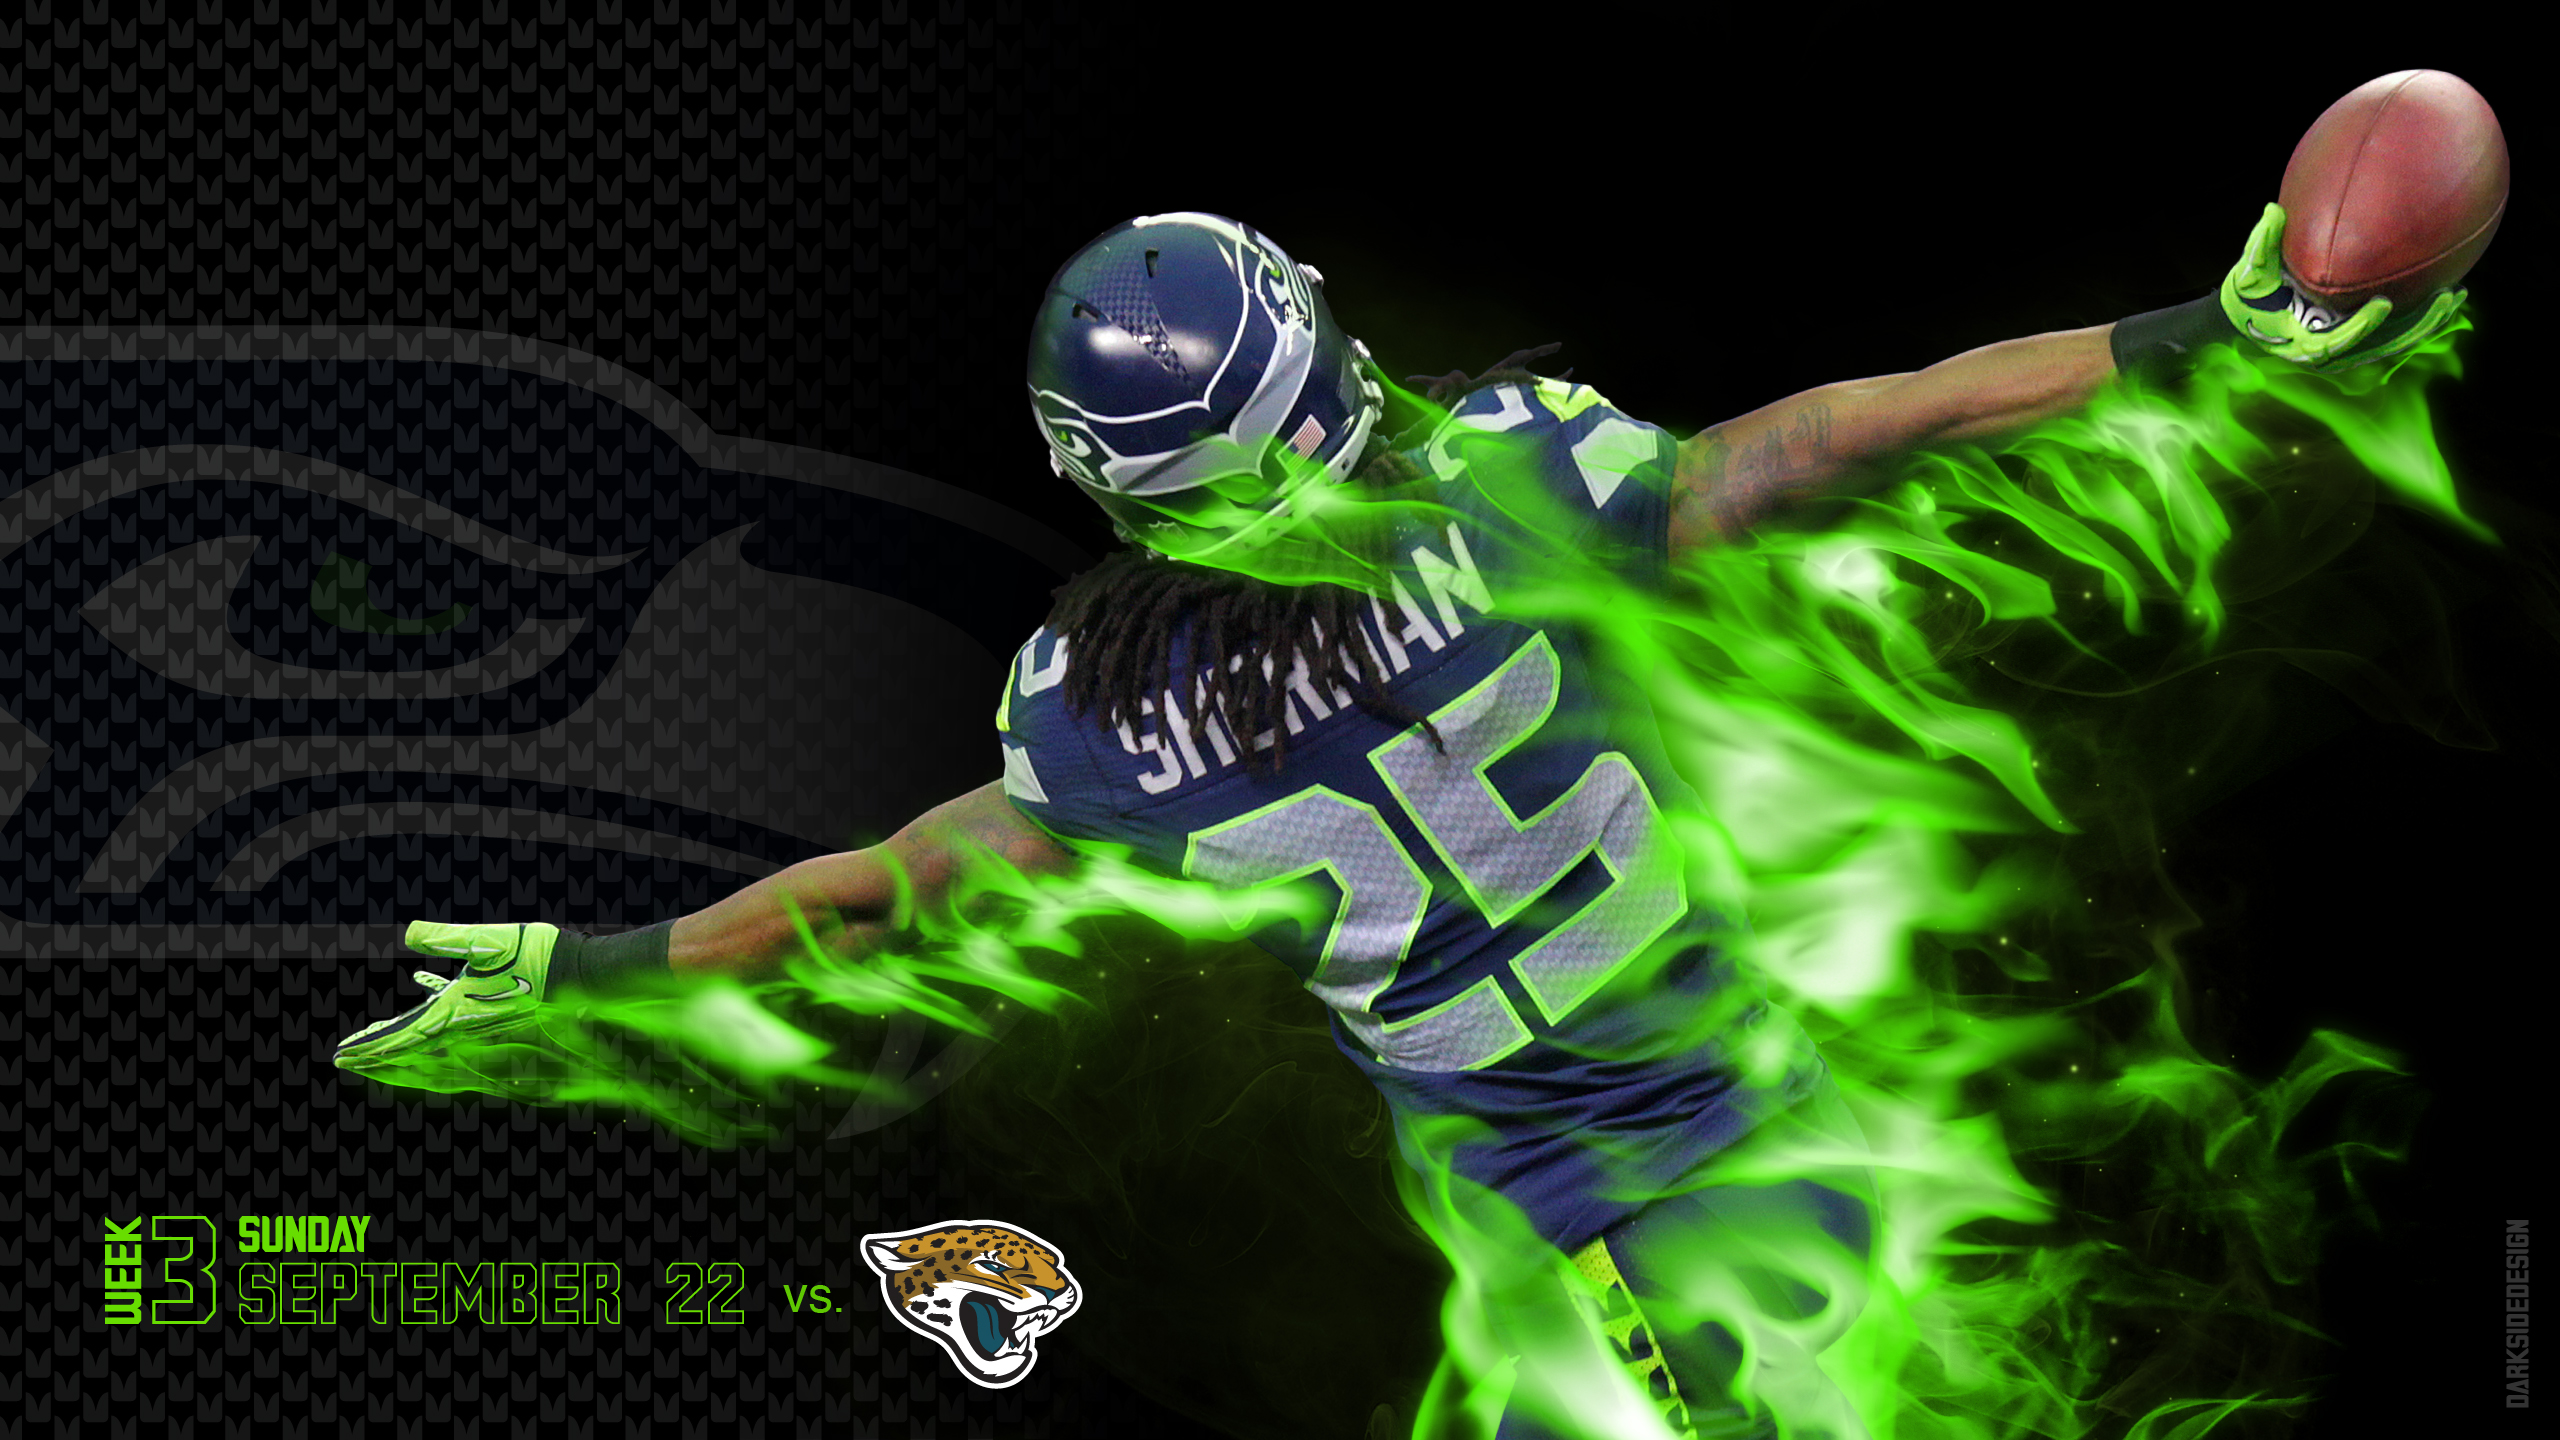 SEATTLE SEAHAWKS football nfl we wallpaper 2560x1440 172633 2560x1440